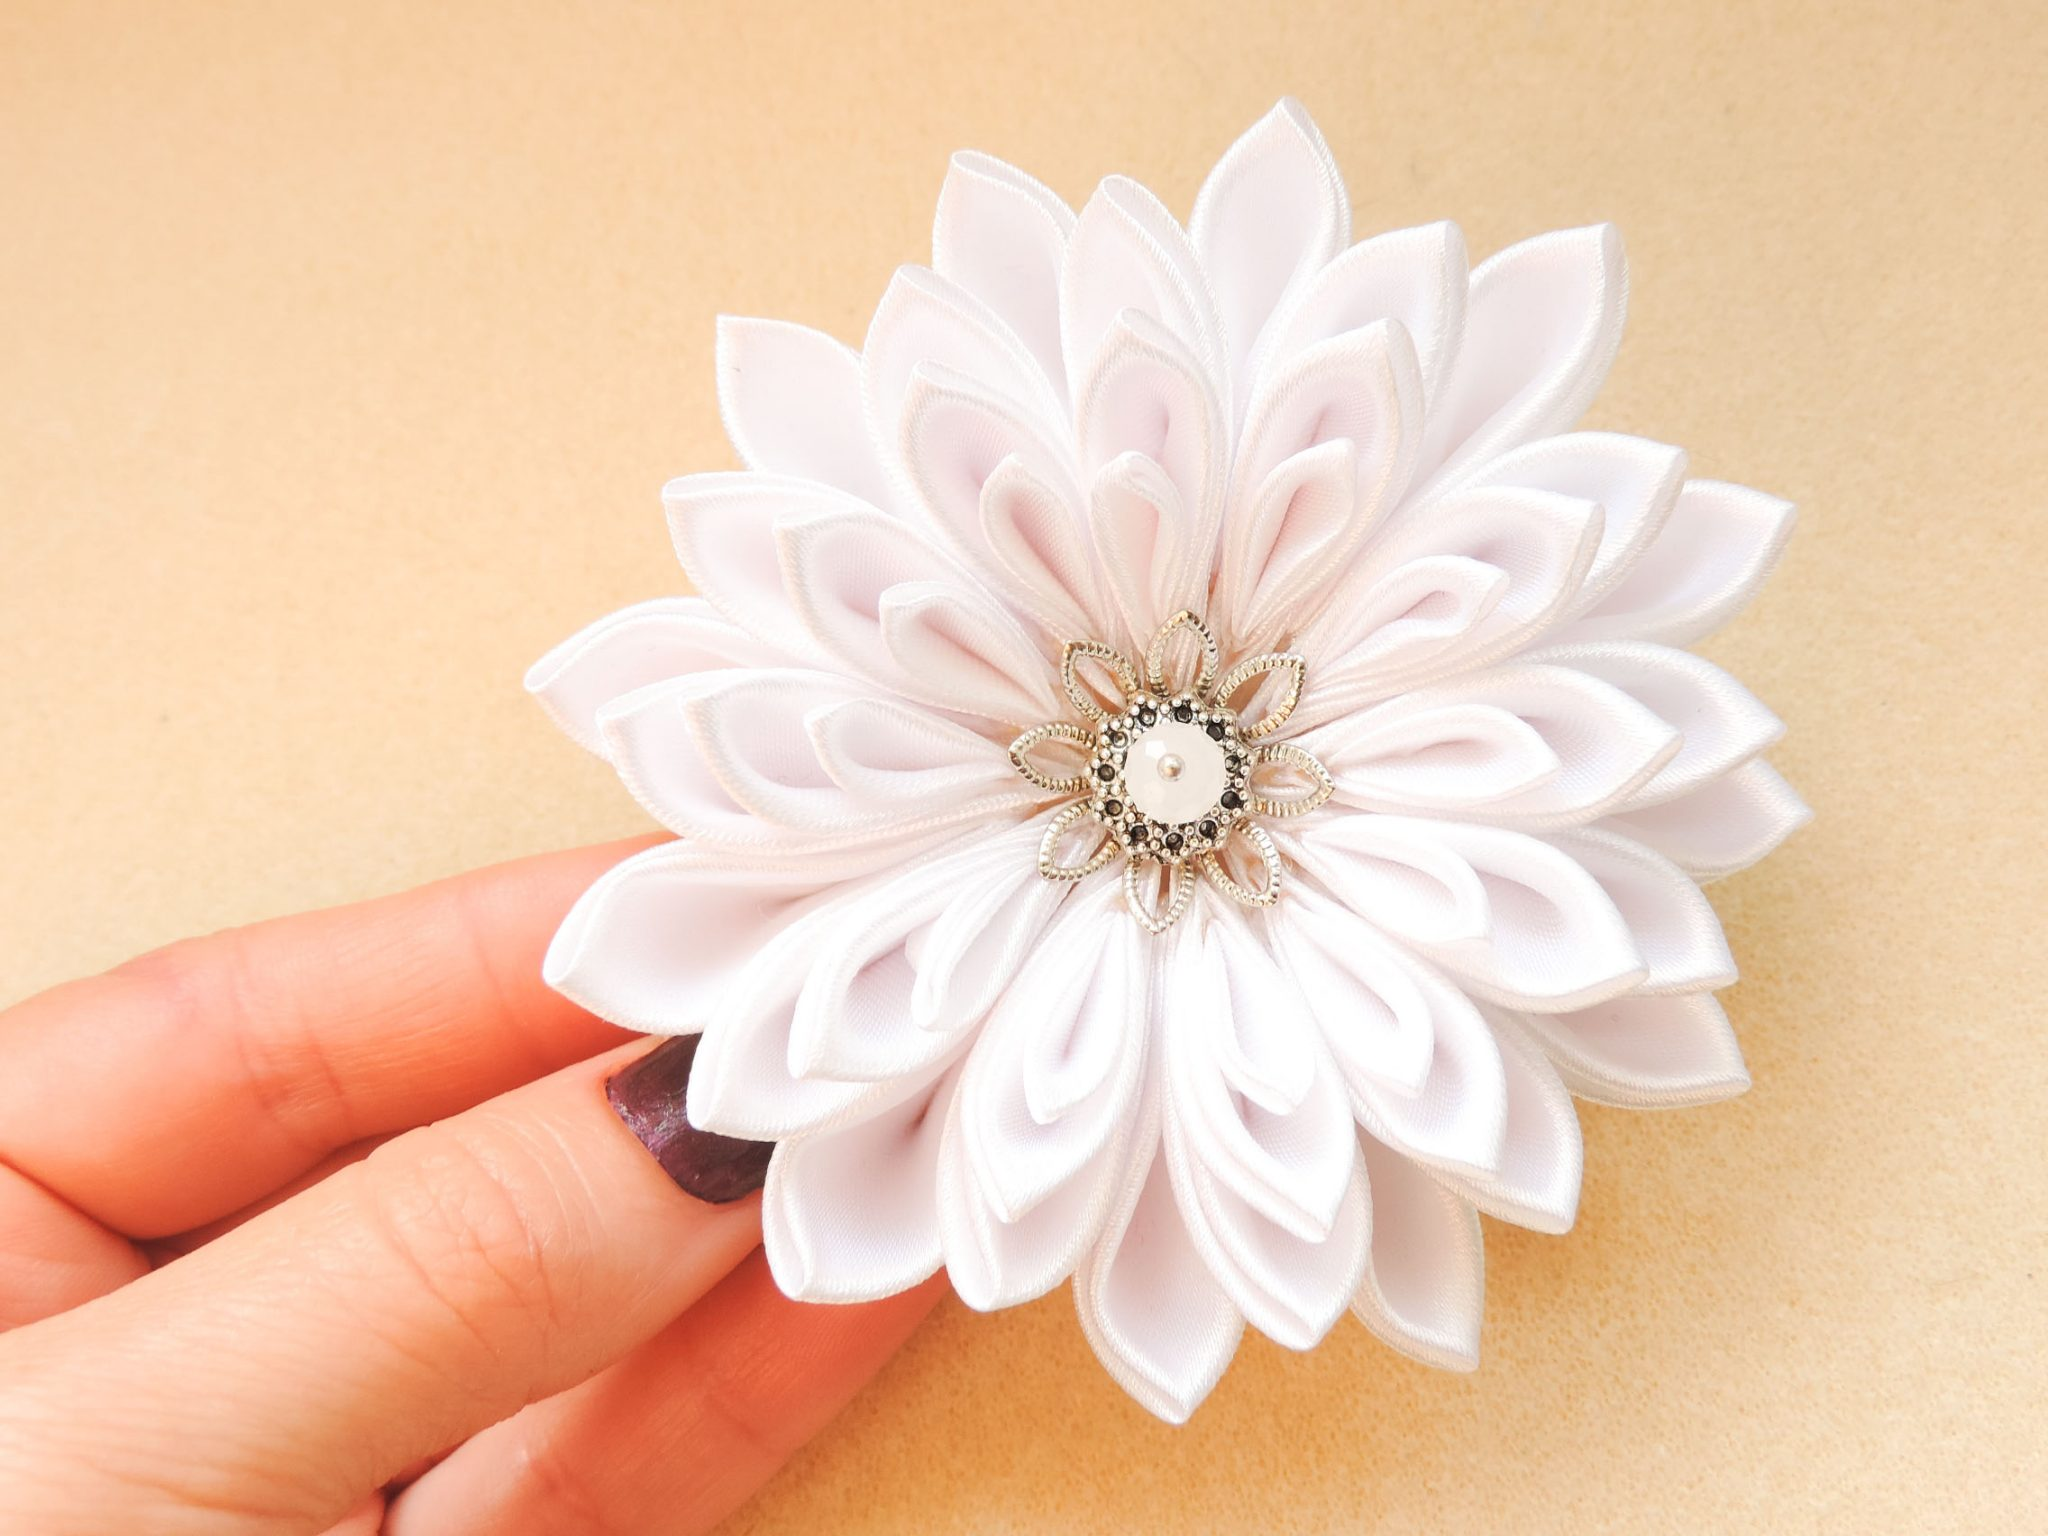 White satin chrysanthemum - DIY tutorial